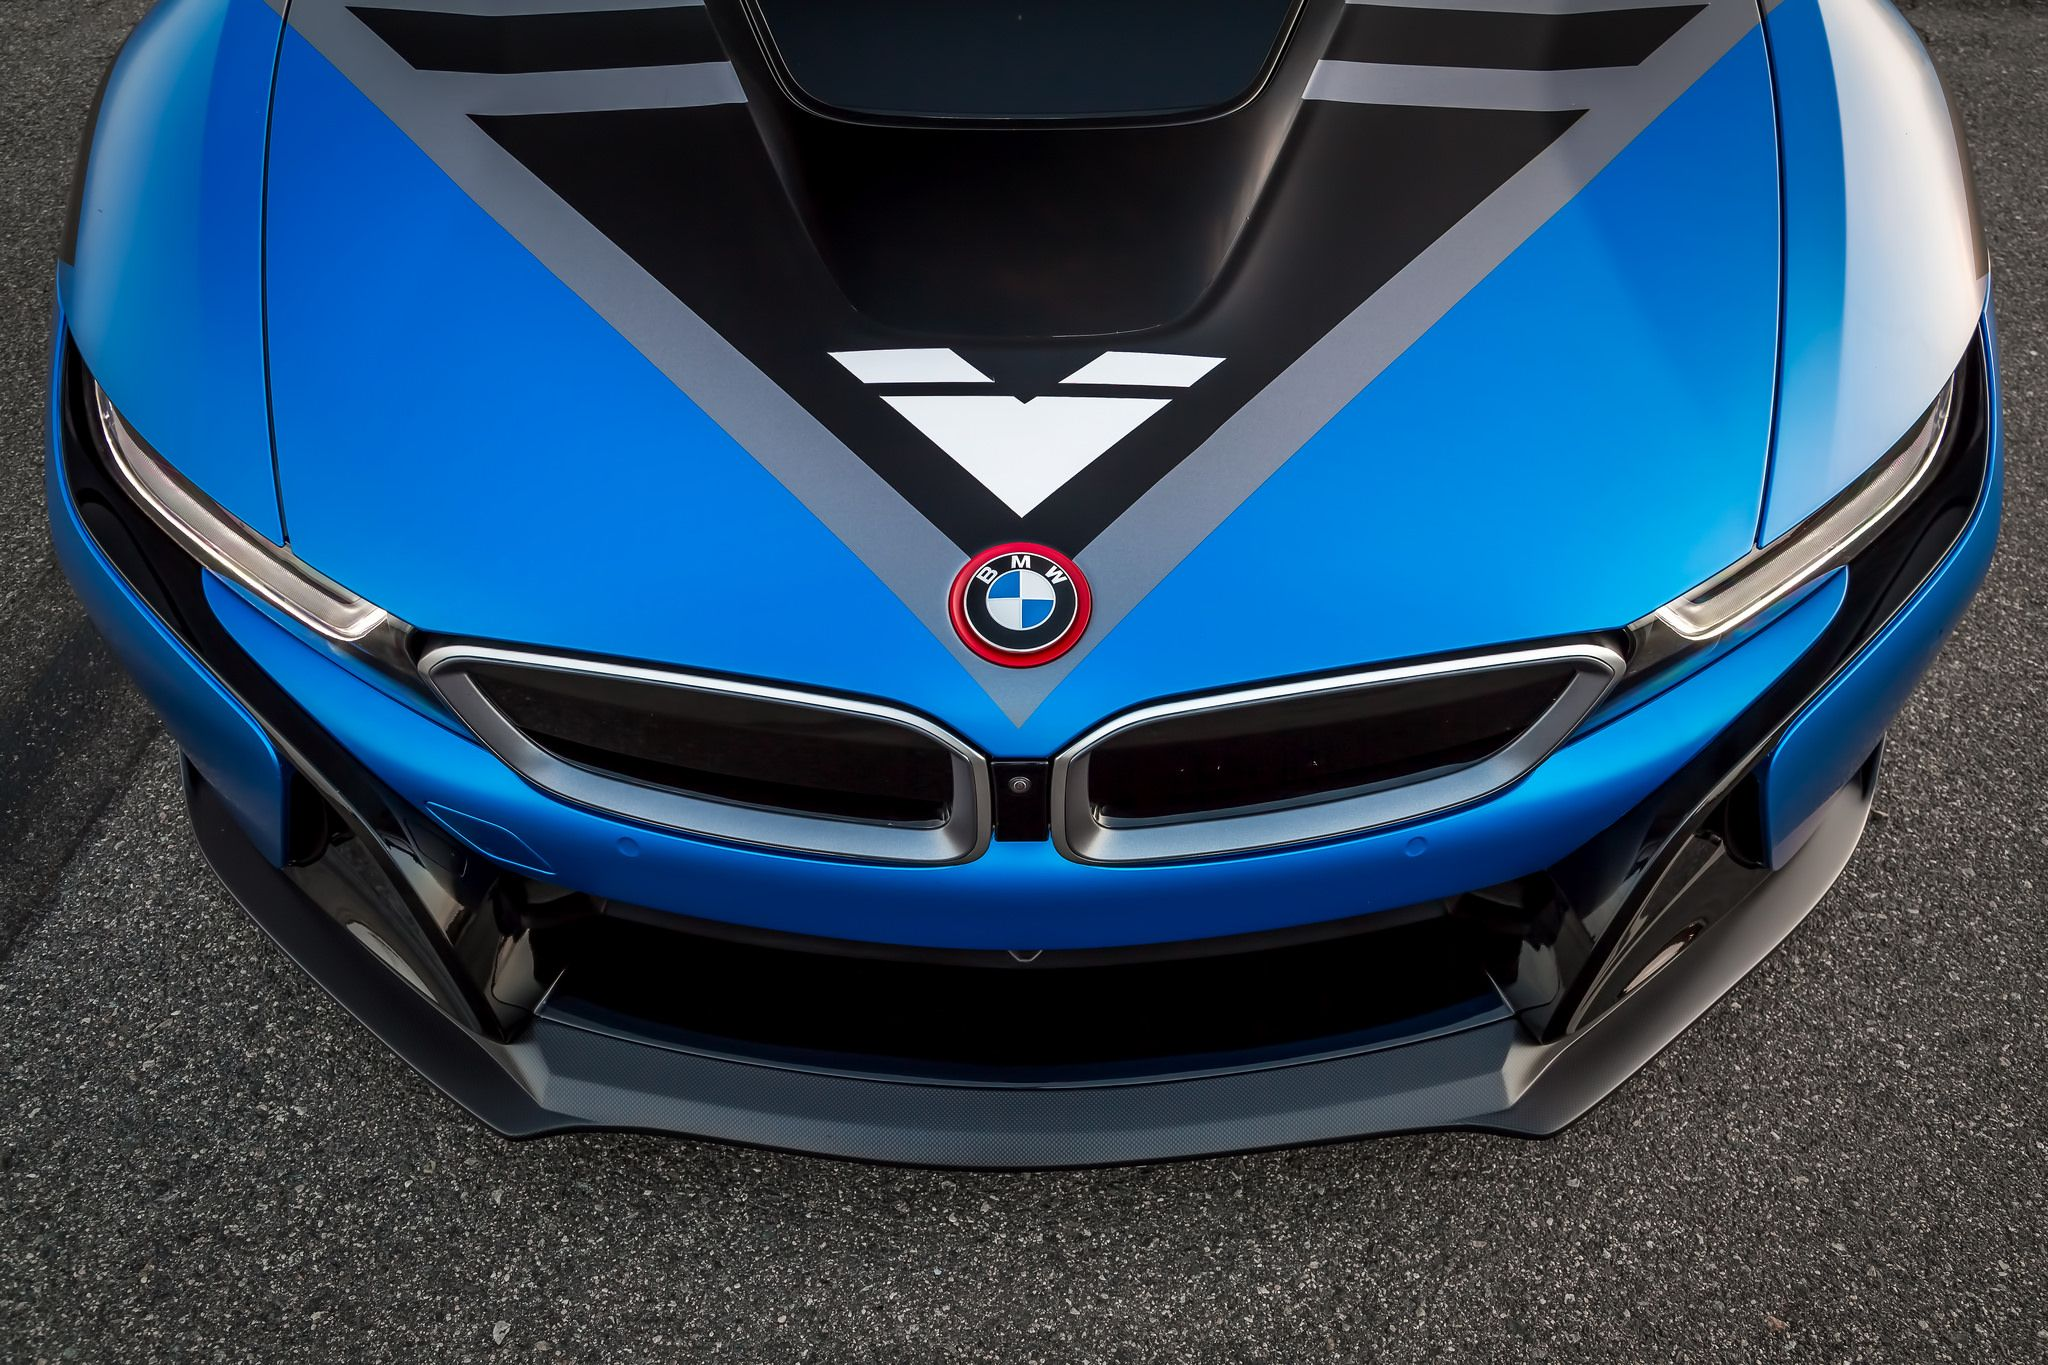 #BMW #i8 #Coupe #eDrive #Vörsteiner #Tuning #Electric #Burn #Blue #Provocative #Sexy #Hot #Badass #Live #Life #Love #Follow #Your #Heart #BMWLife